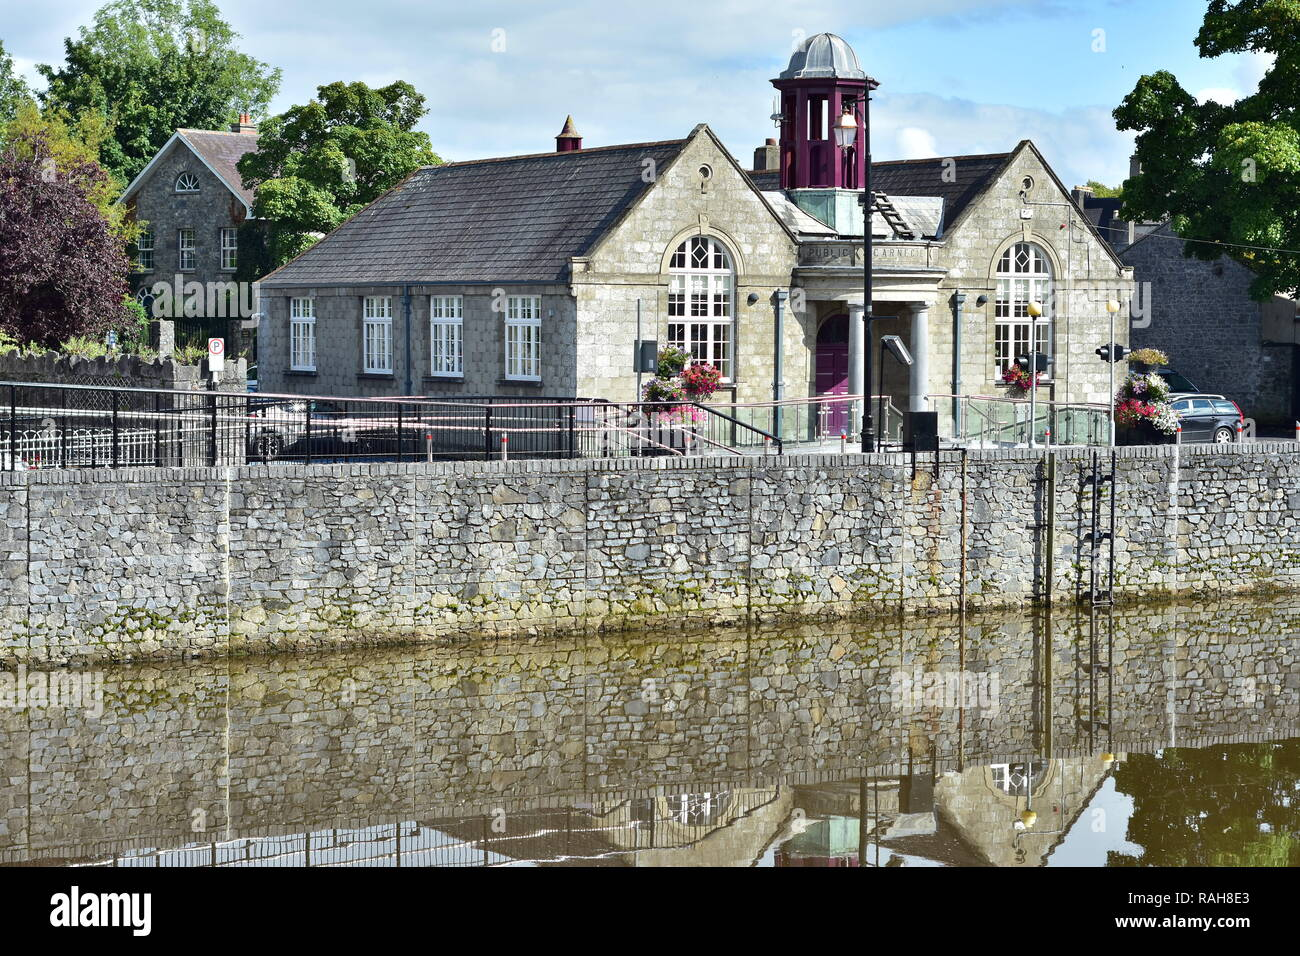 Kilkenny City Branch Library stone building with purple tower on bank of river Nore. - Stock Image